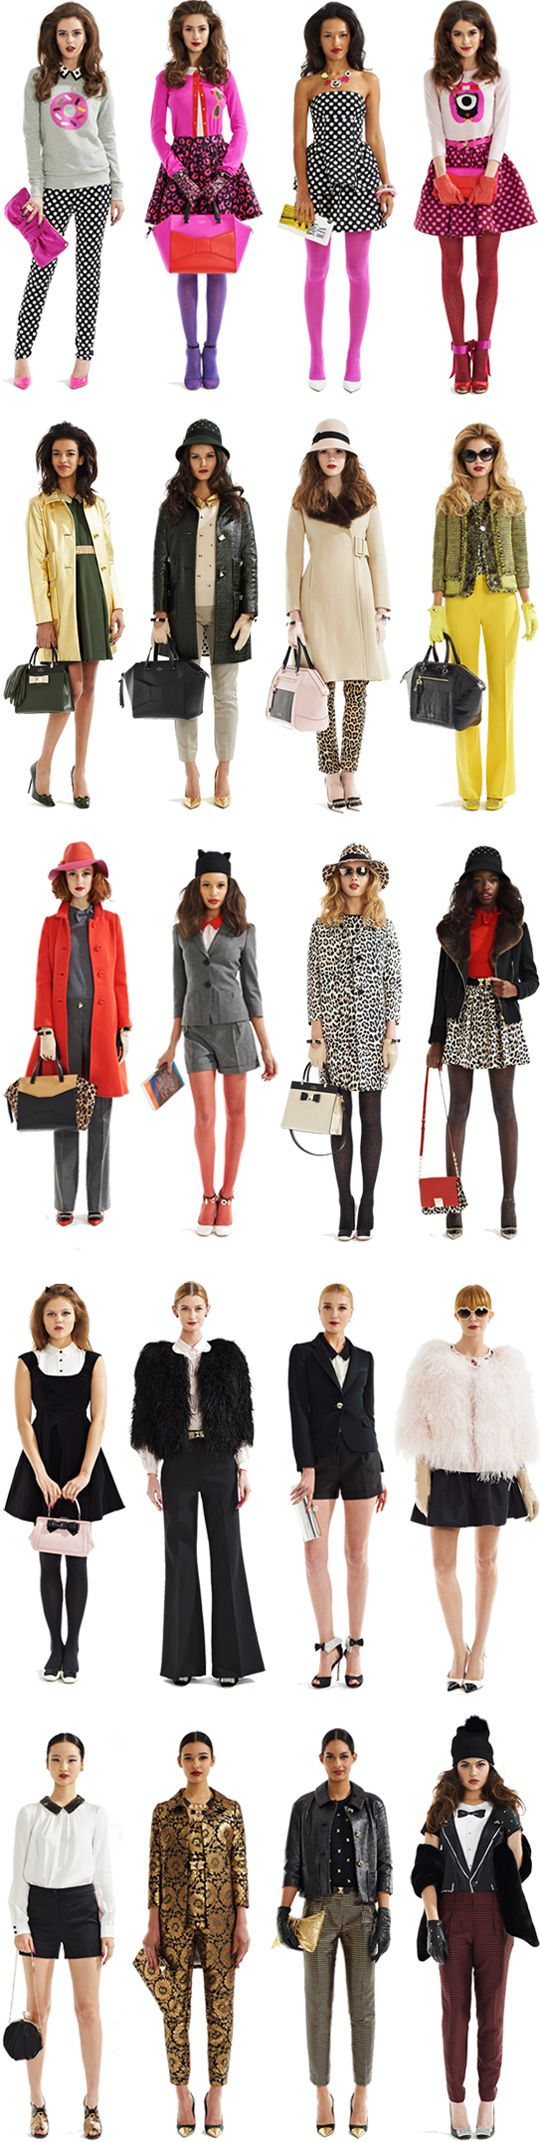 Kate-Spade-New-York-Fall-2013